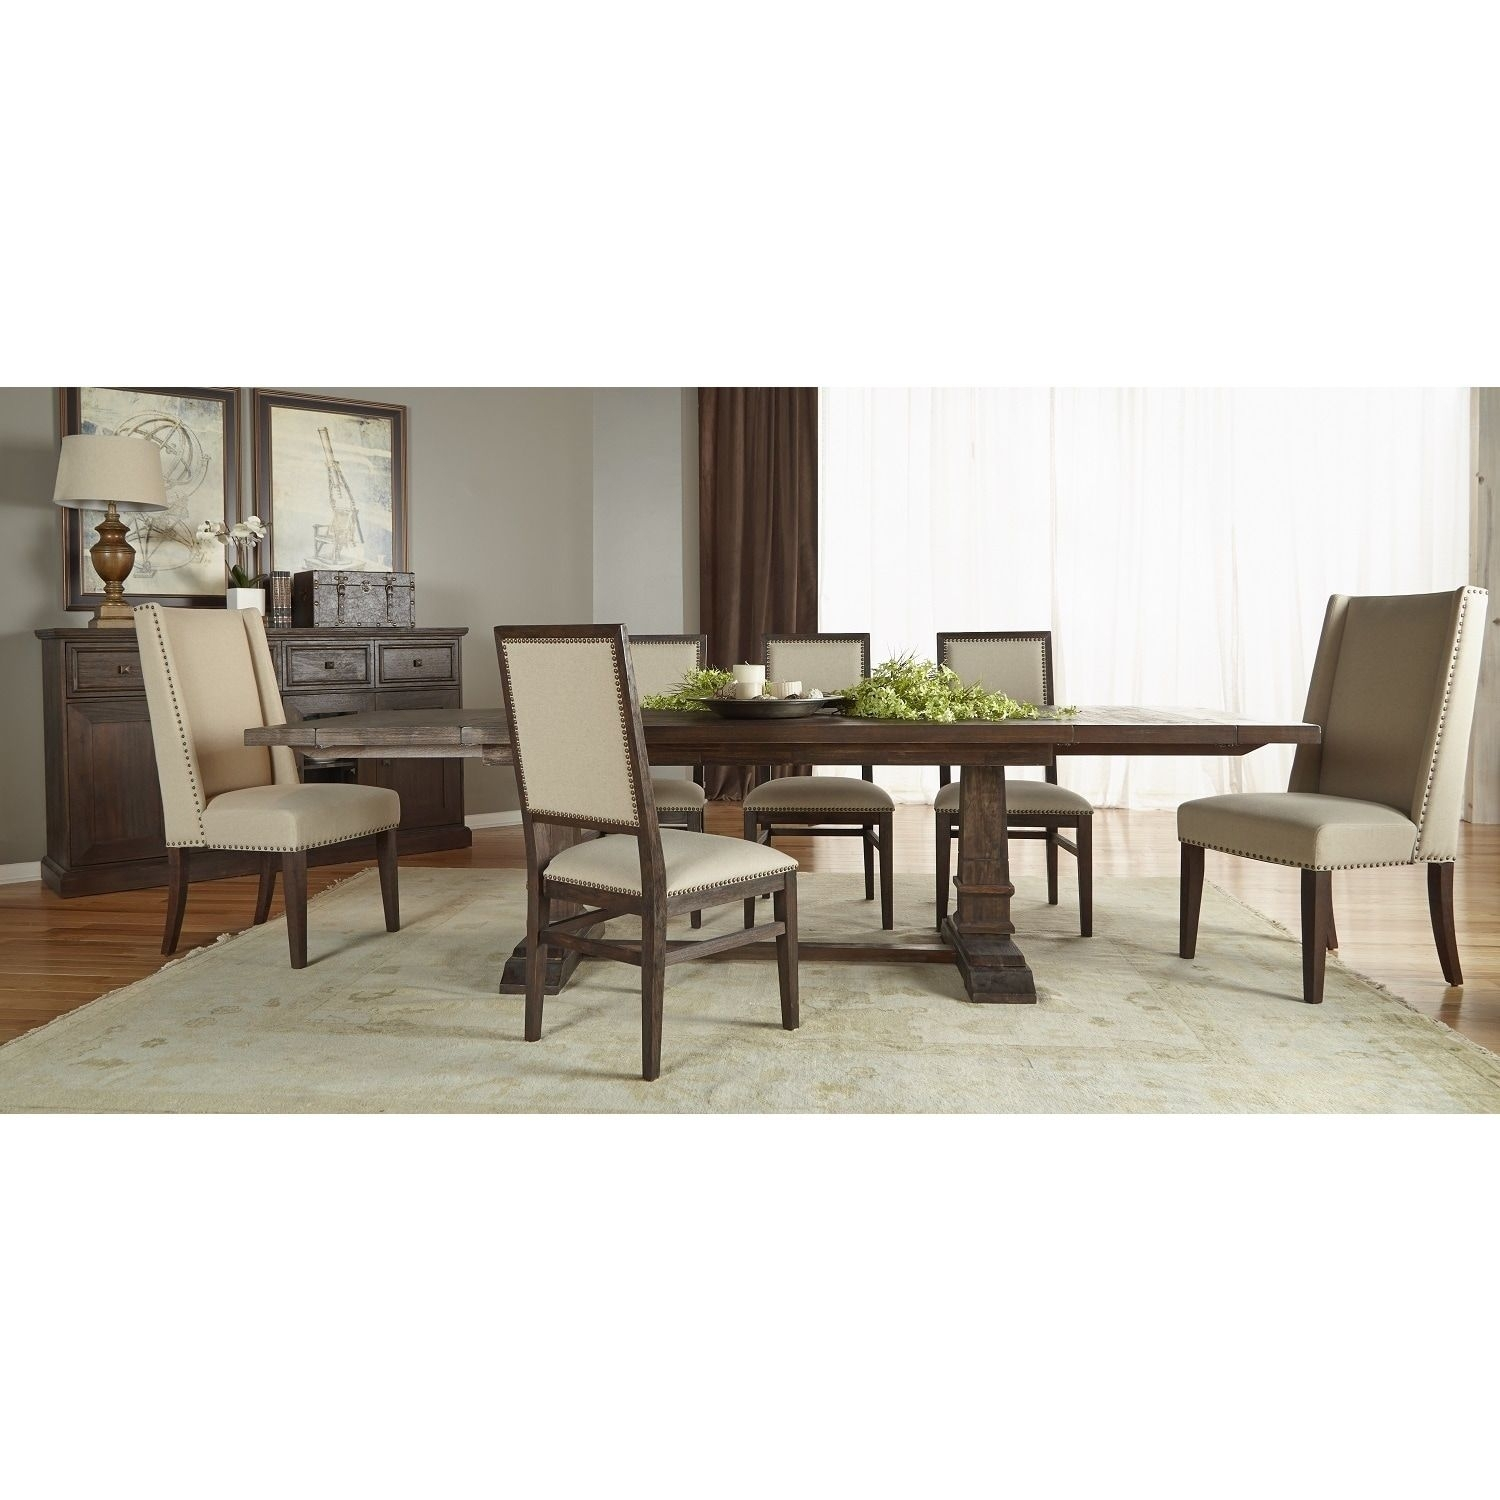 Gray Manor Harlan Rustic Java Double Pedestal Extension Dining Table Throughout Most Recently Released Chandler 7 Piece Extension Dining Sets With Fabric Side Chairs (View 9 of 20)